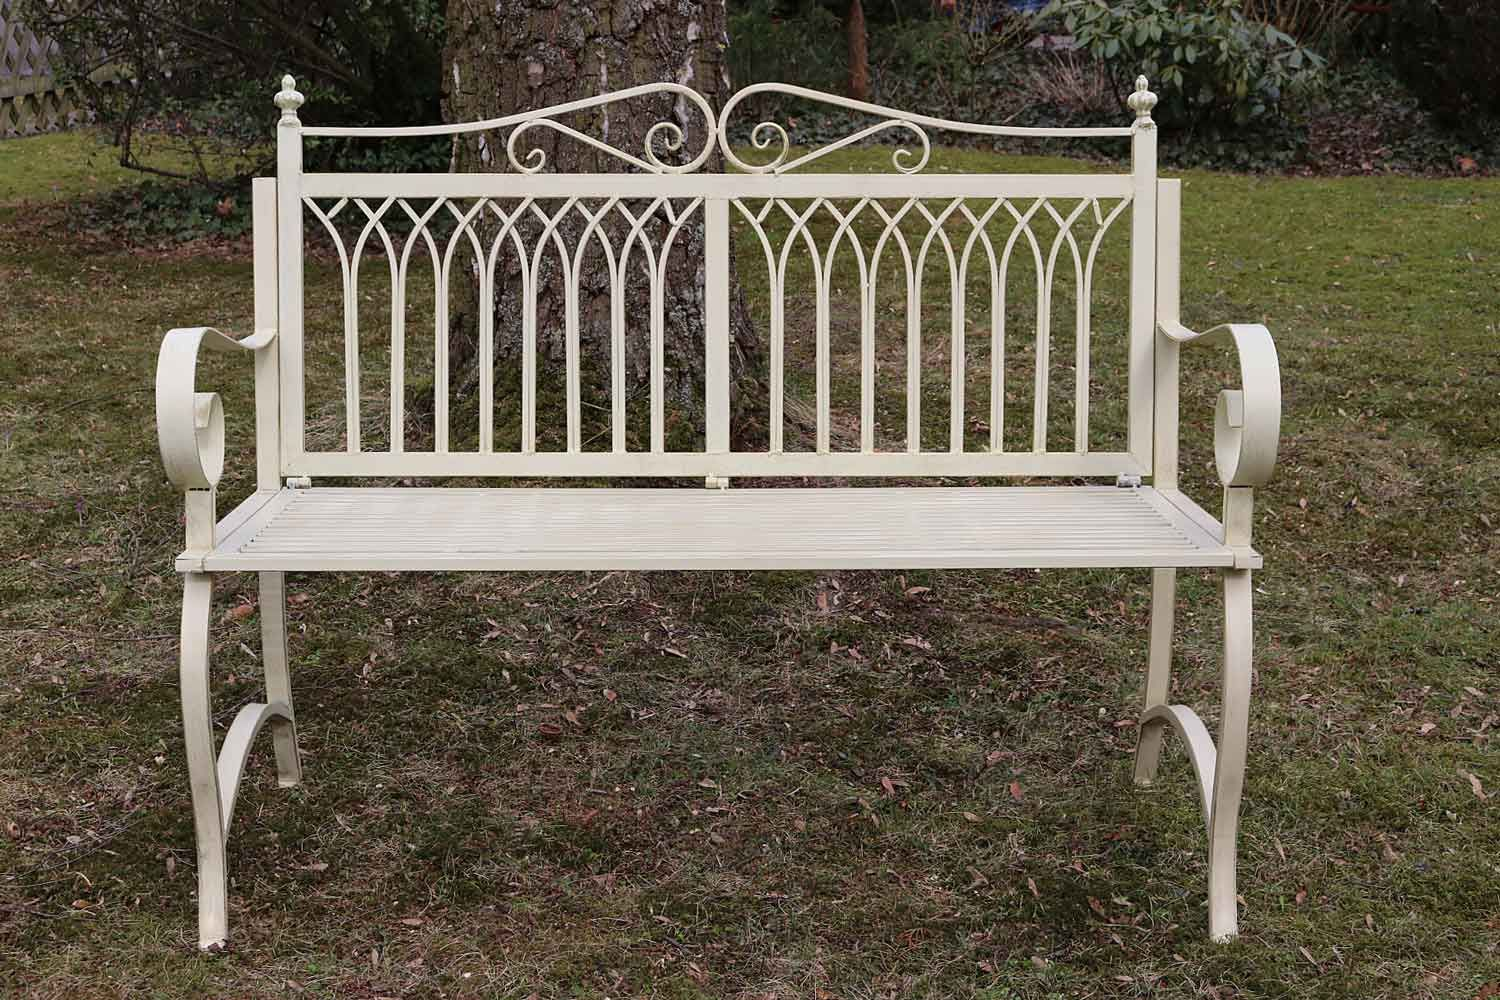 Antique style garden bench metal cream white furniture park nostalgic 119cm ebay - Reasons choosing vintage style furniture ...